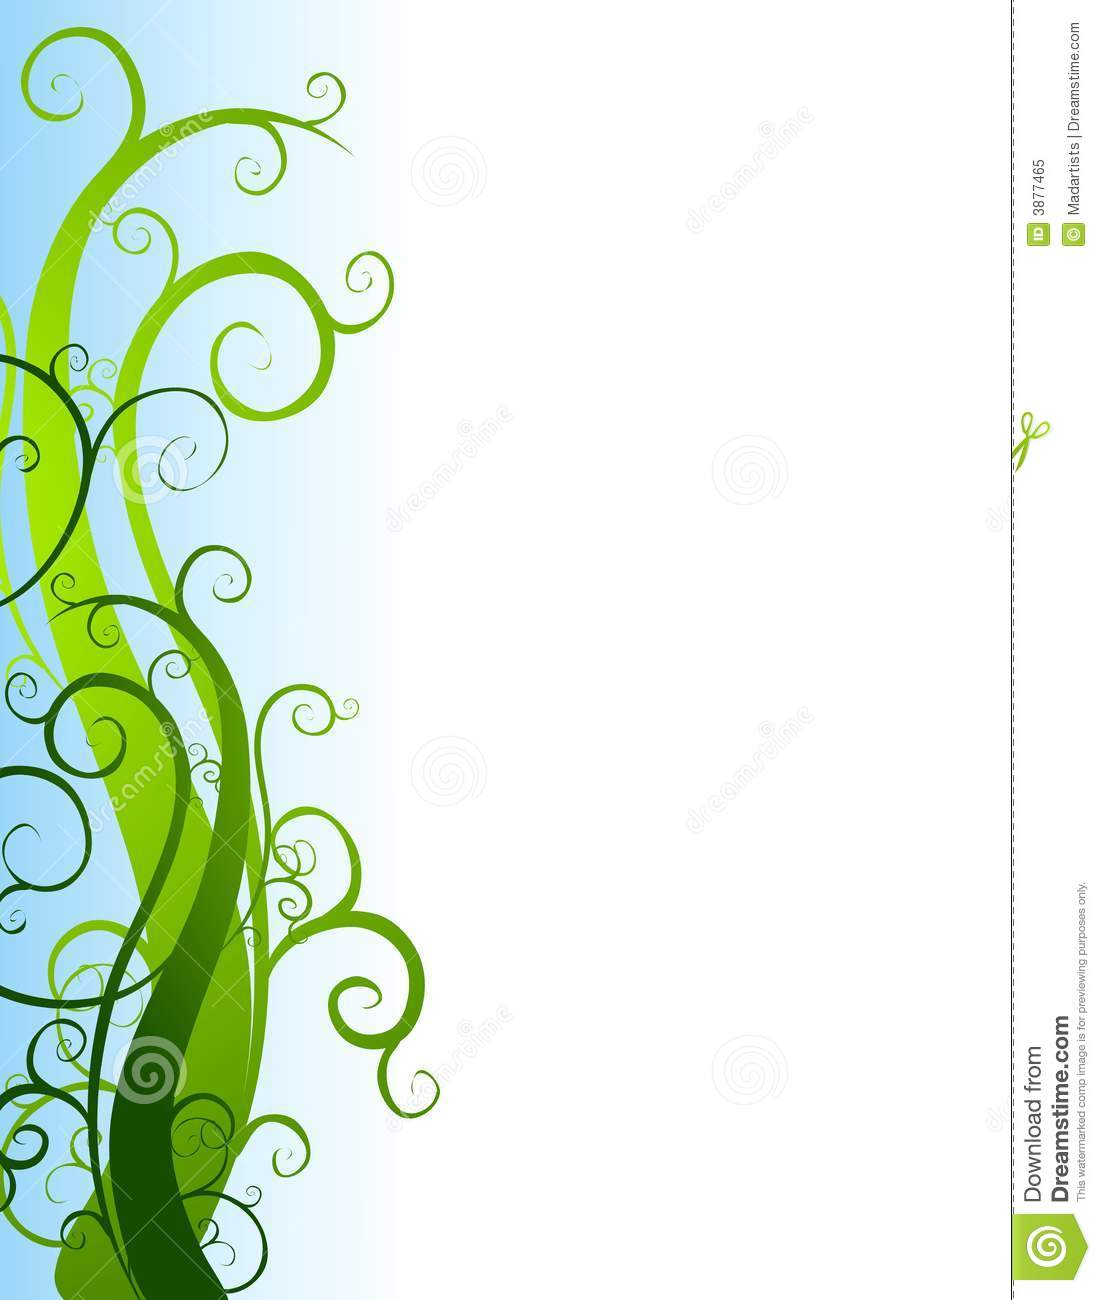 Green Garden Vines Border Royalty Free Stock Photo Image 3877465